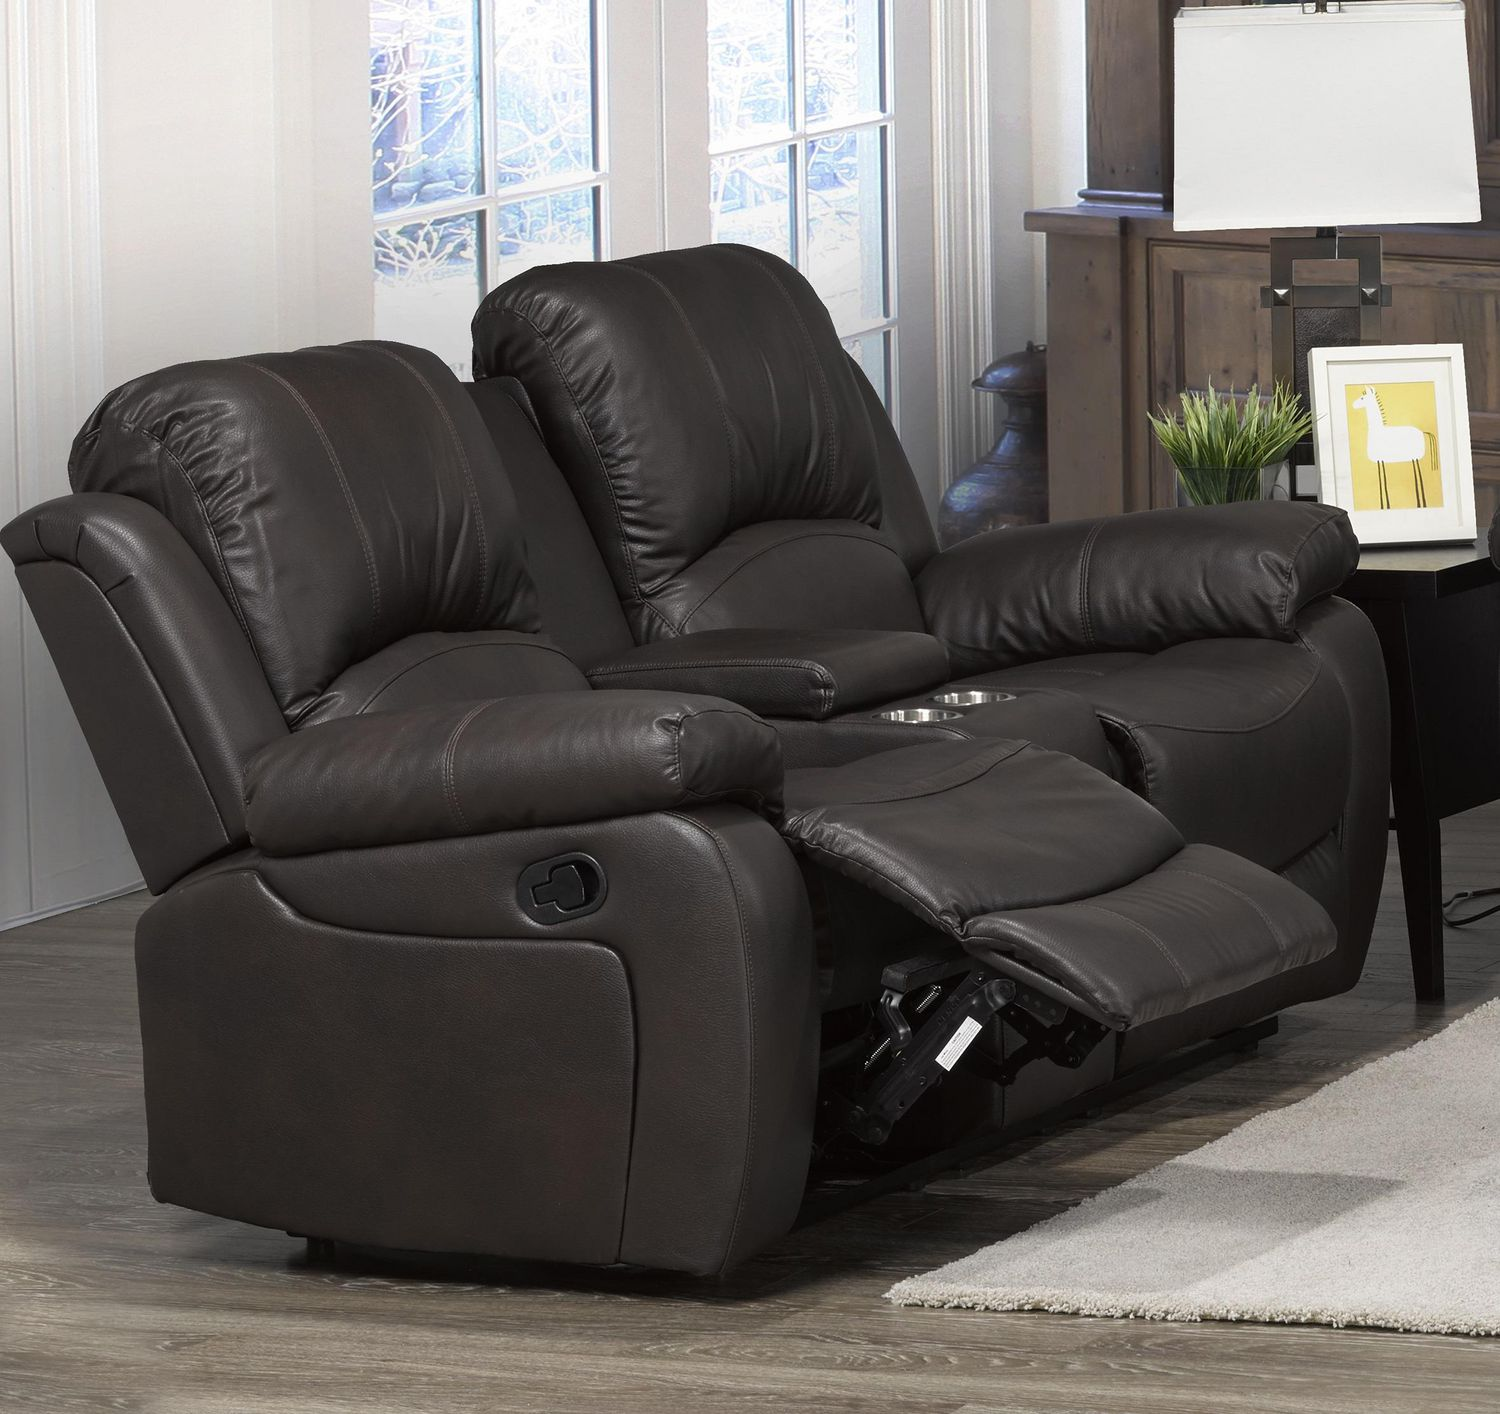 Picture of: Boris Recliner Love Seat With Storage Console Brown Walmart Canada